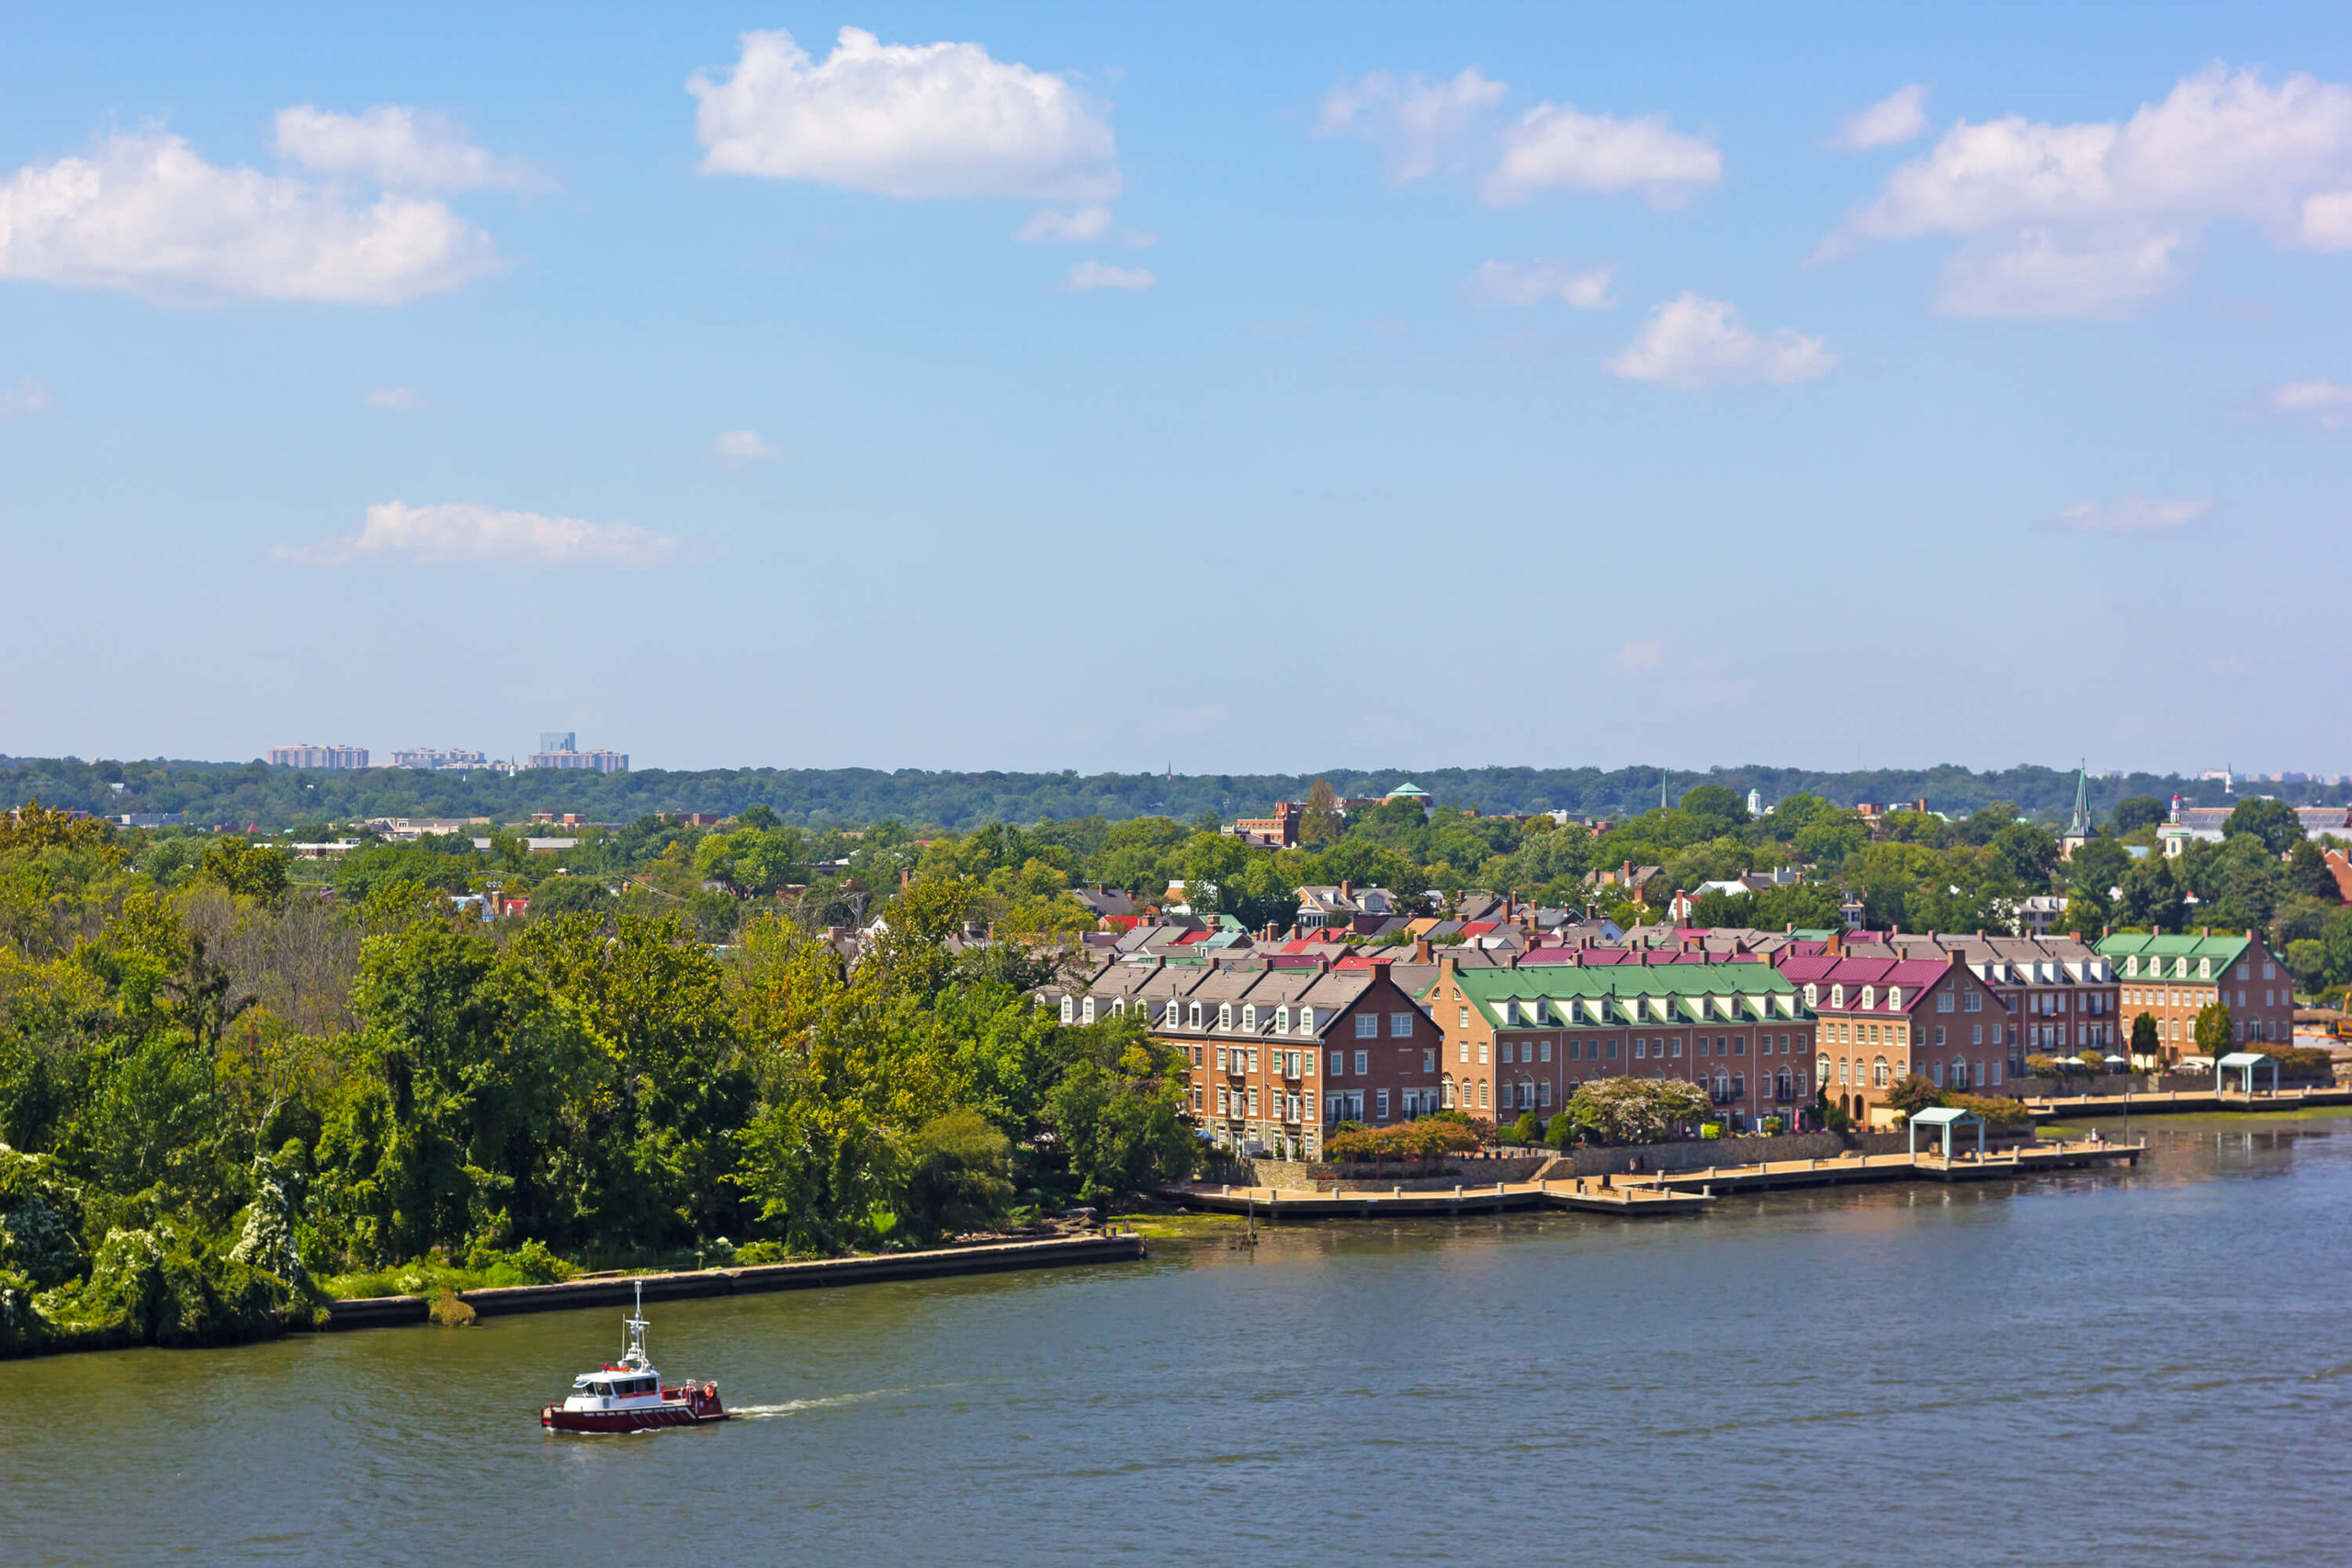 view of Alexandria VA from river